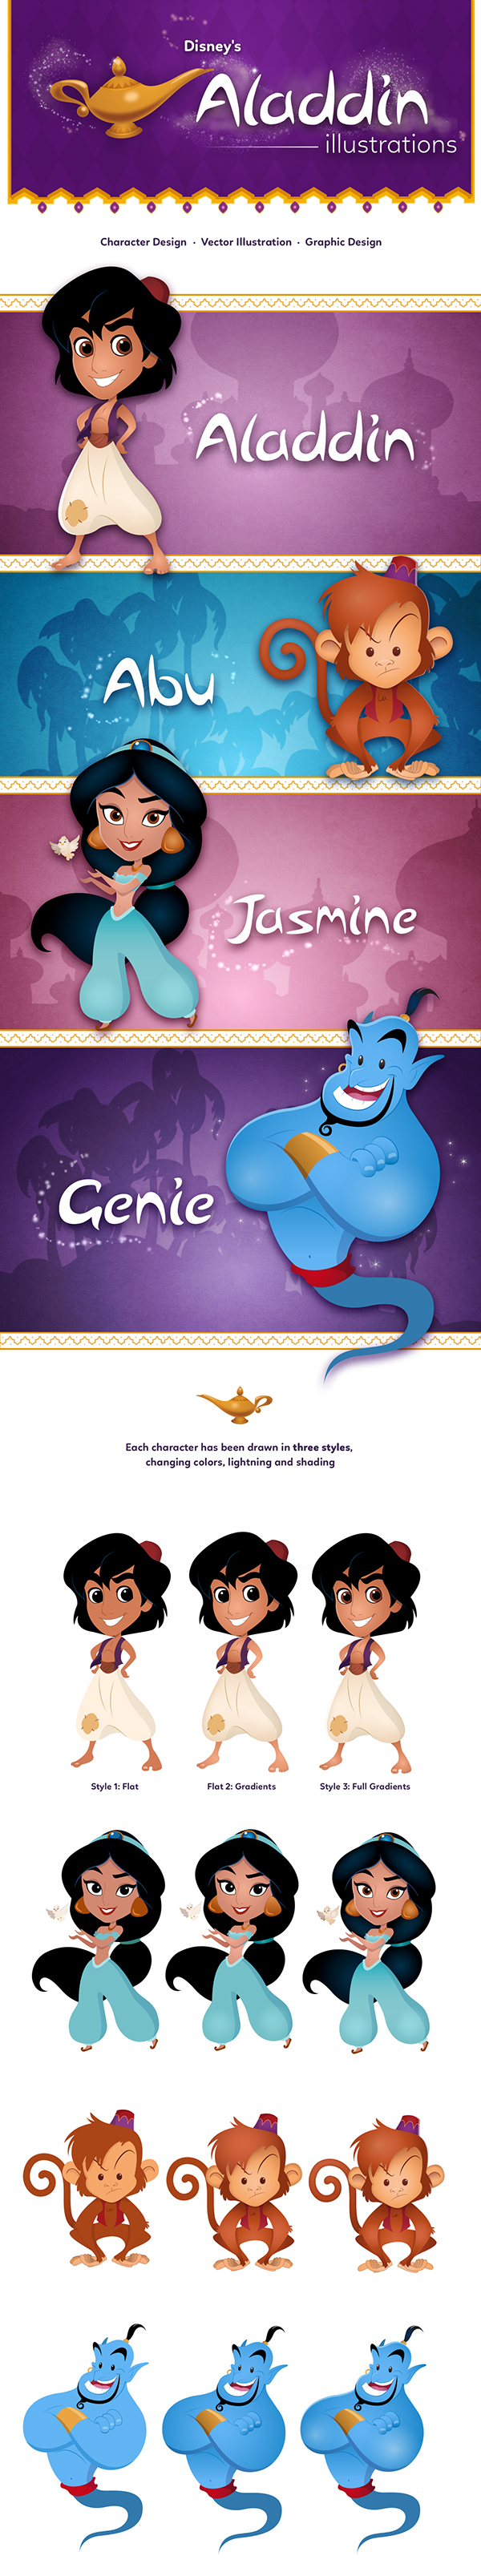 Disney's Aladdin Vector Illustrations on Behance